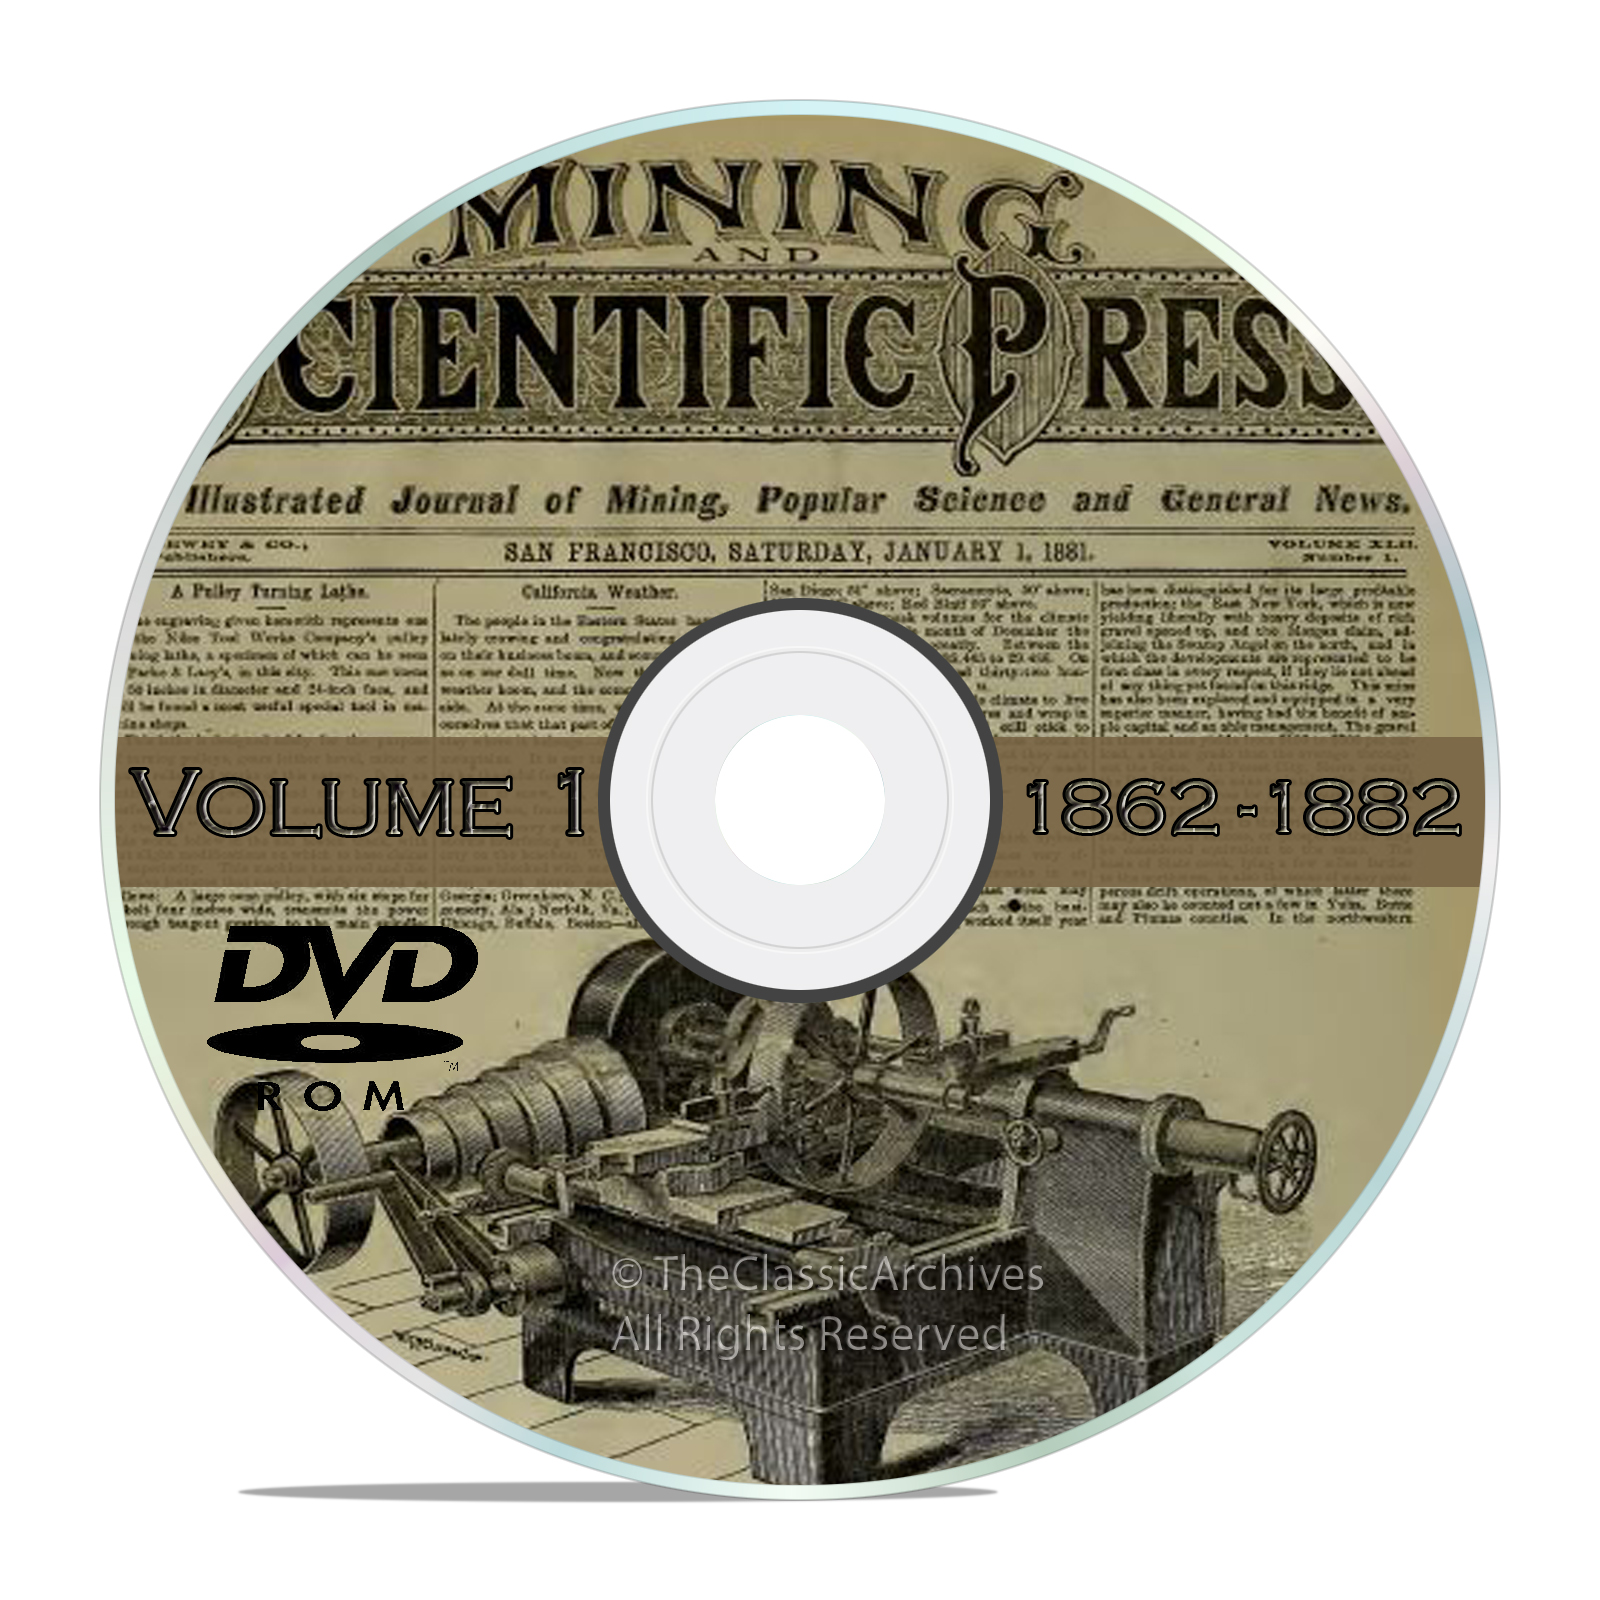 Vintage Mining and Scientific Press, 1862 - 1882, 1000 Back Issues Vol1 DVD